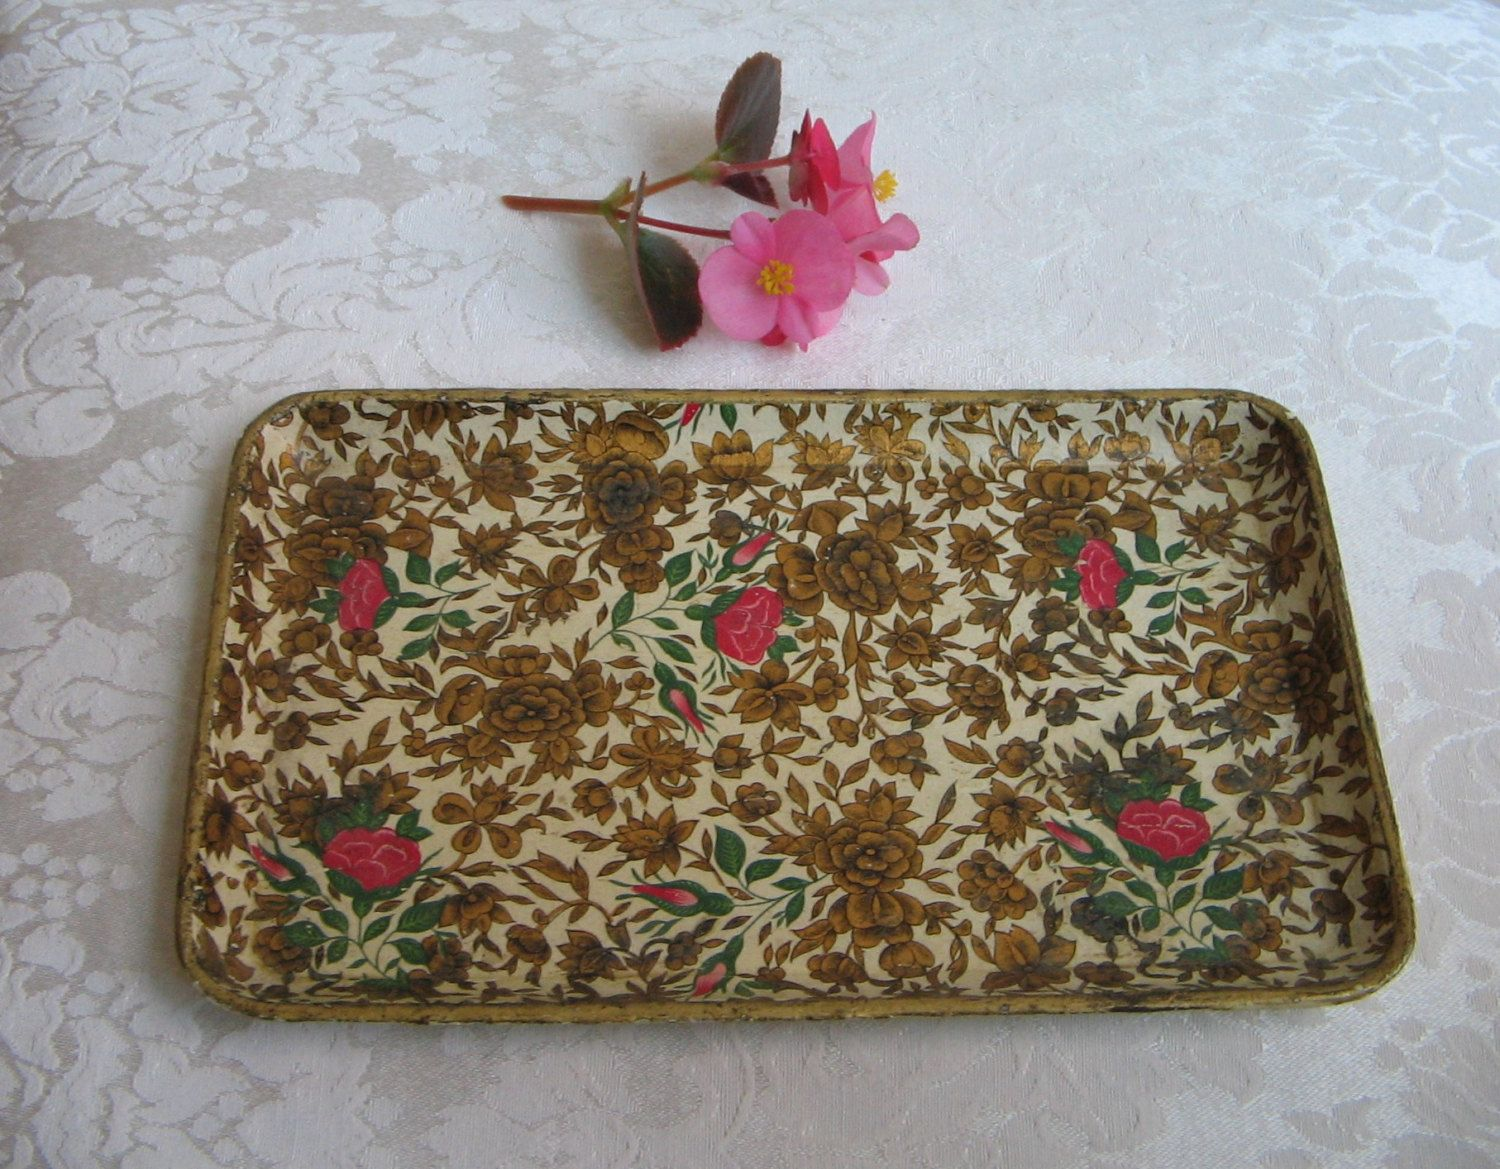 Vintage tray floral paper mache japan x gold cream pink flowers